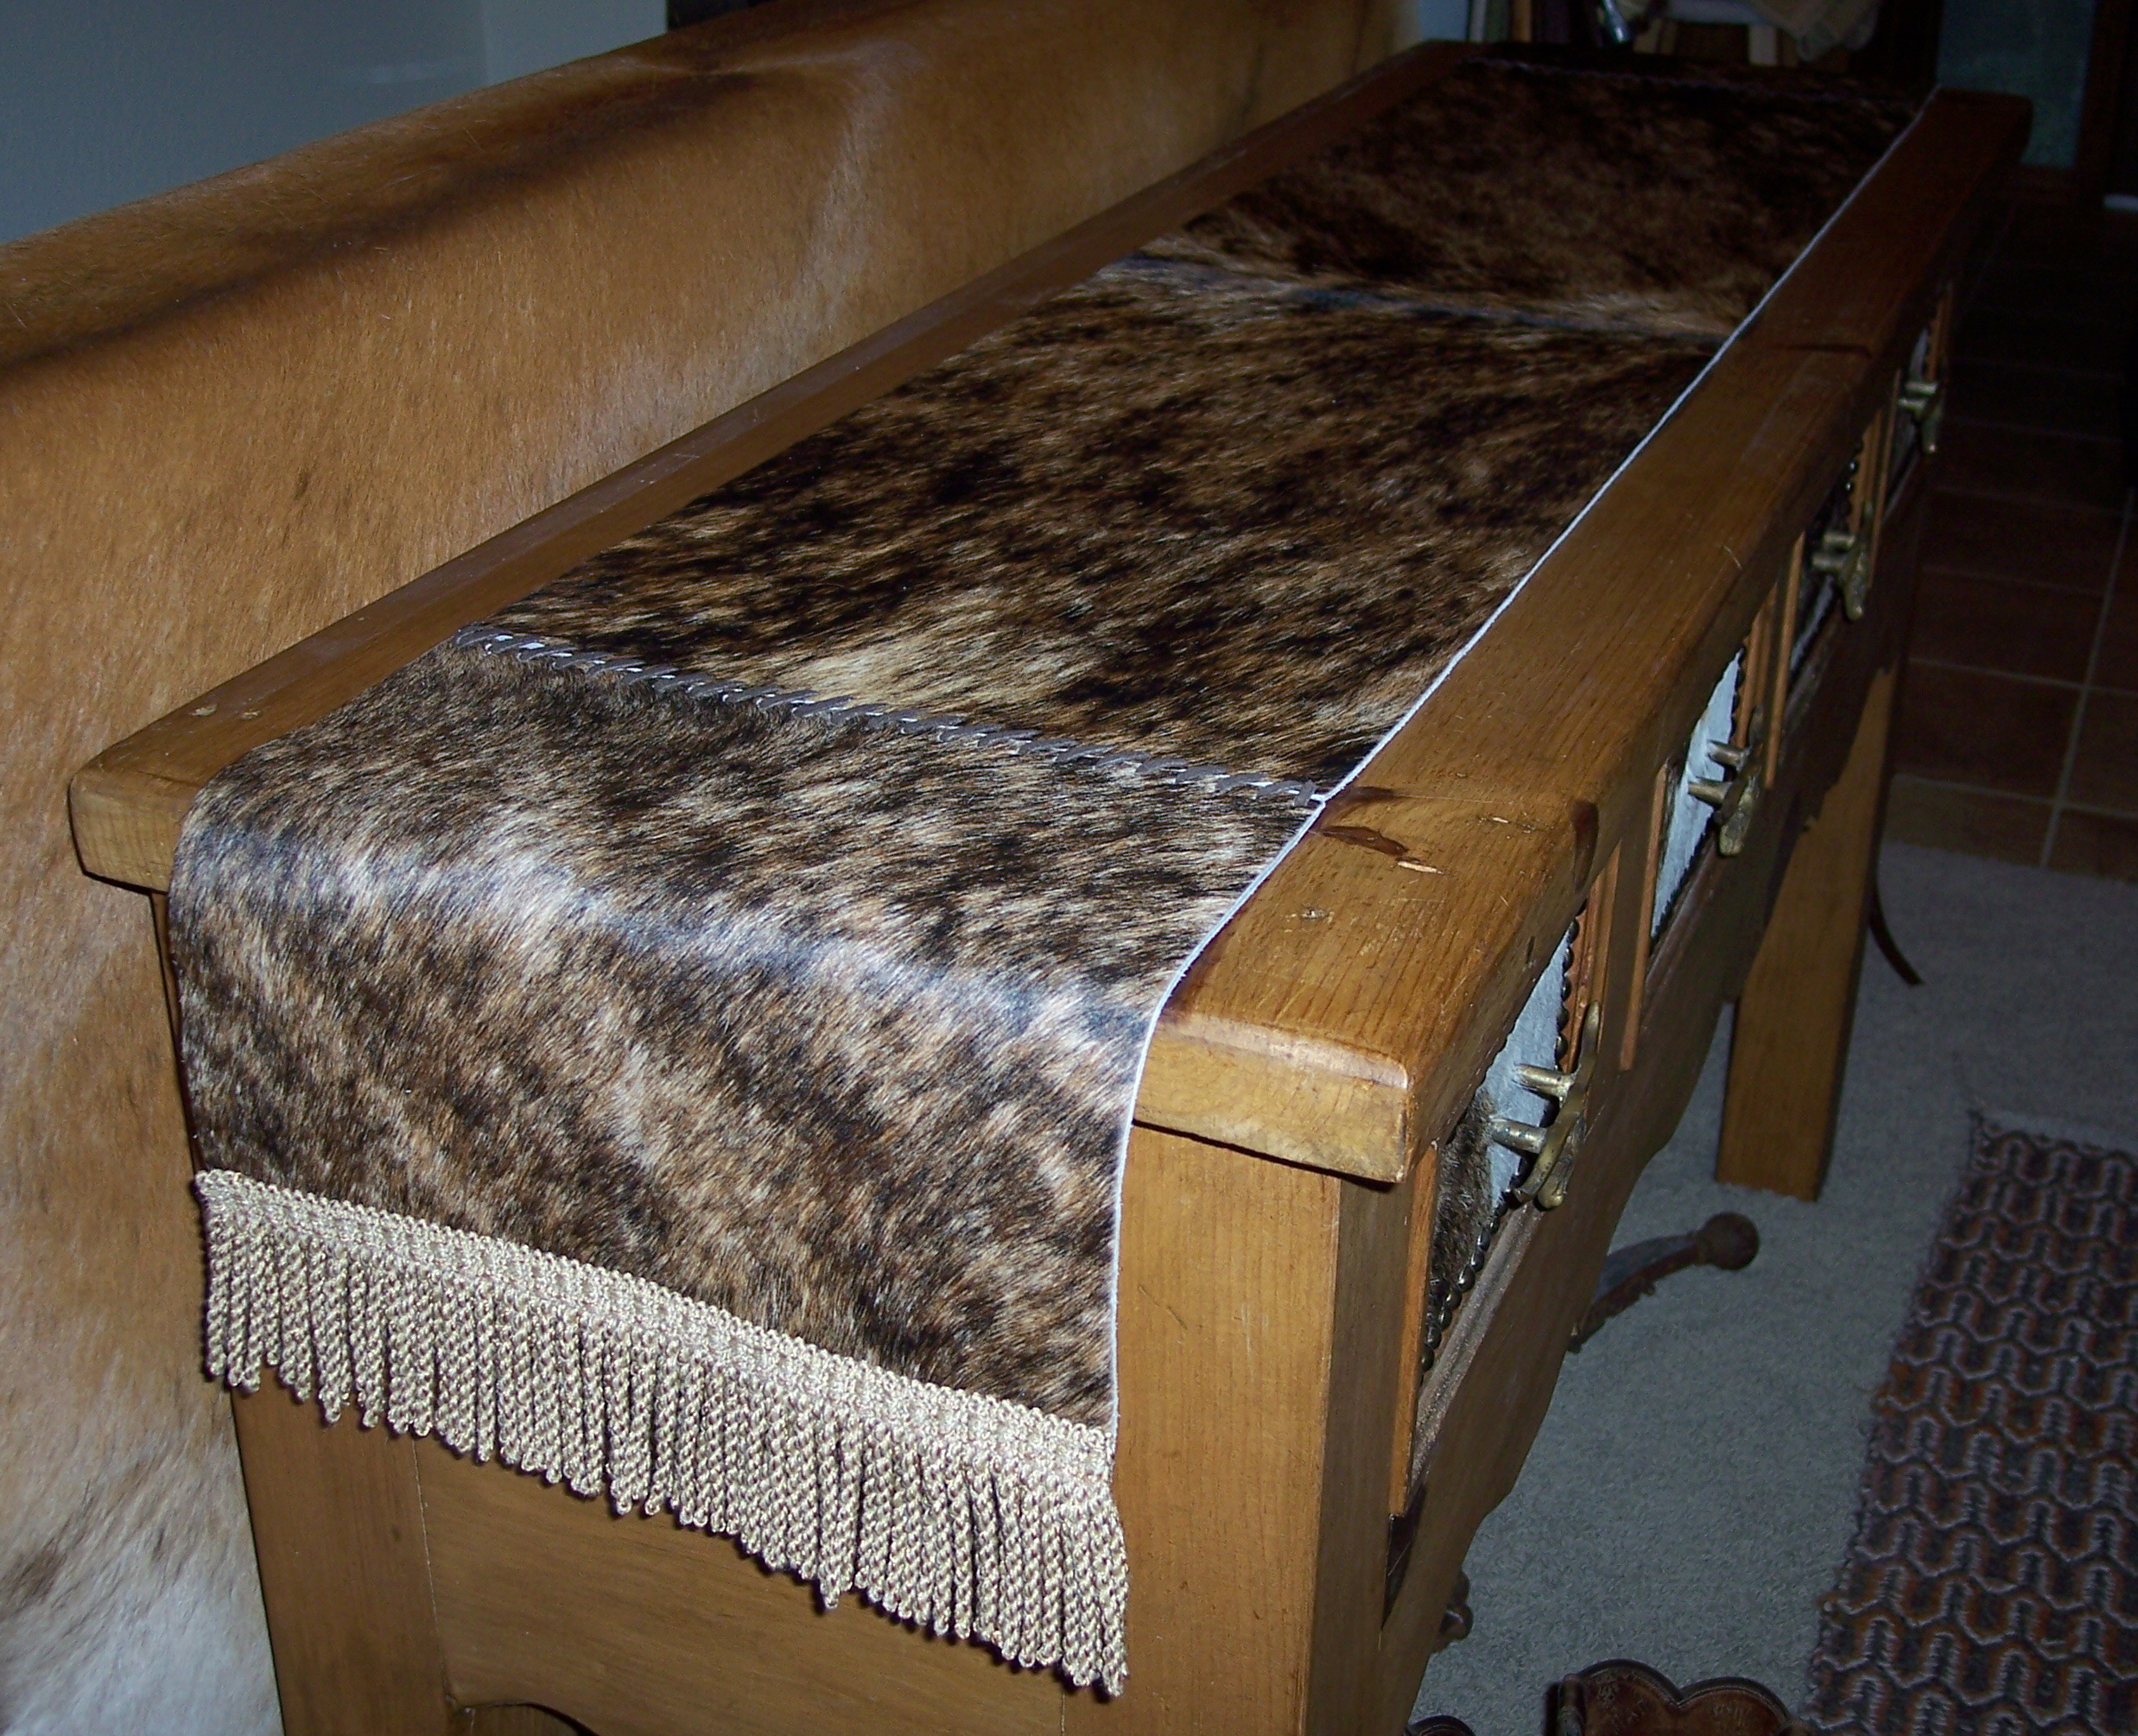 Table runners for Hide tr in table